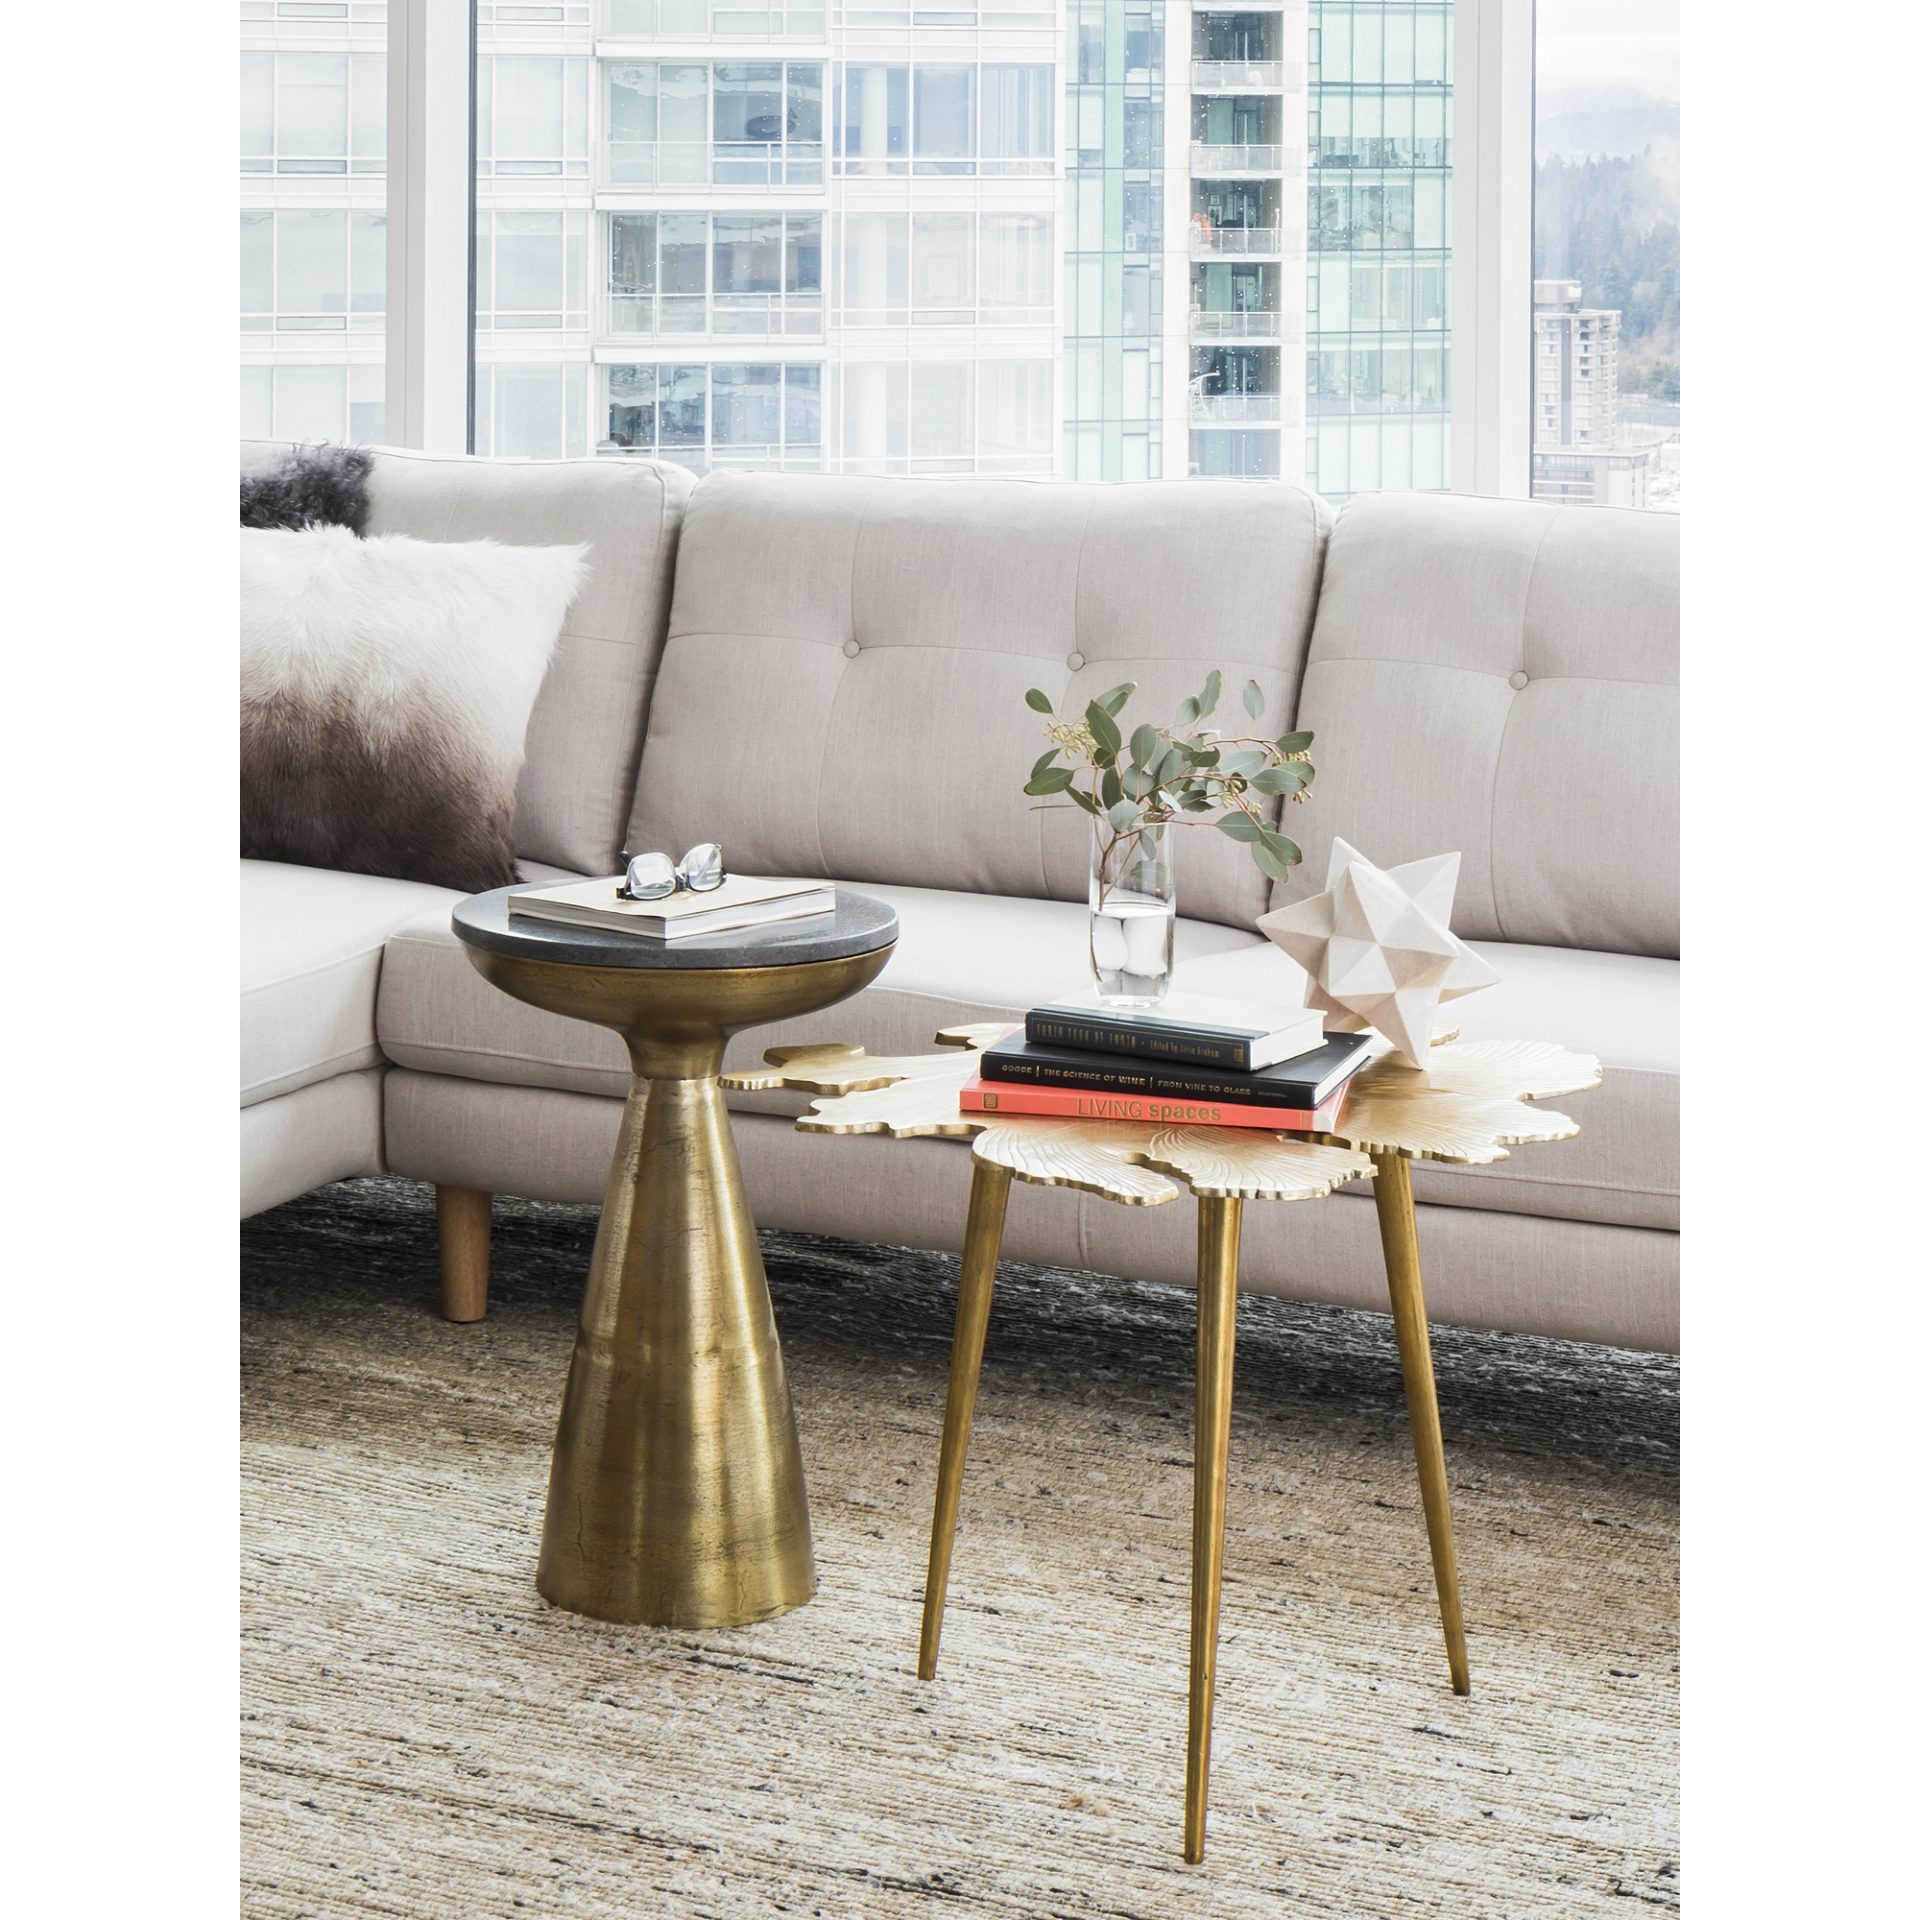 amoeba side table gold products moe whole living spaces accent tables uttermost lamps teak end indoor hampton bay spring haven kids nautical lamp ikea toy storage cubes chinese